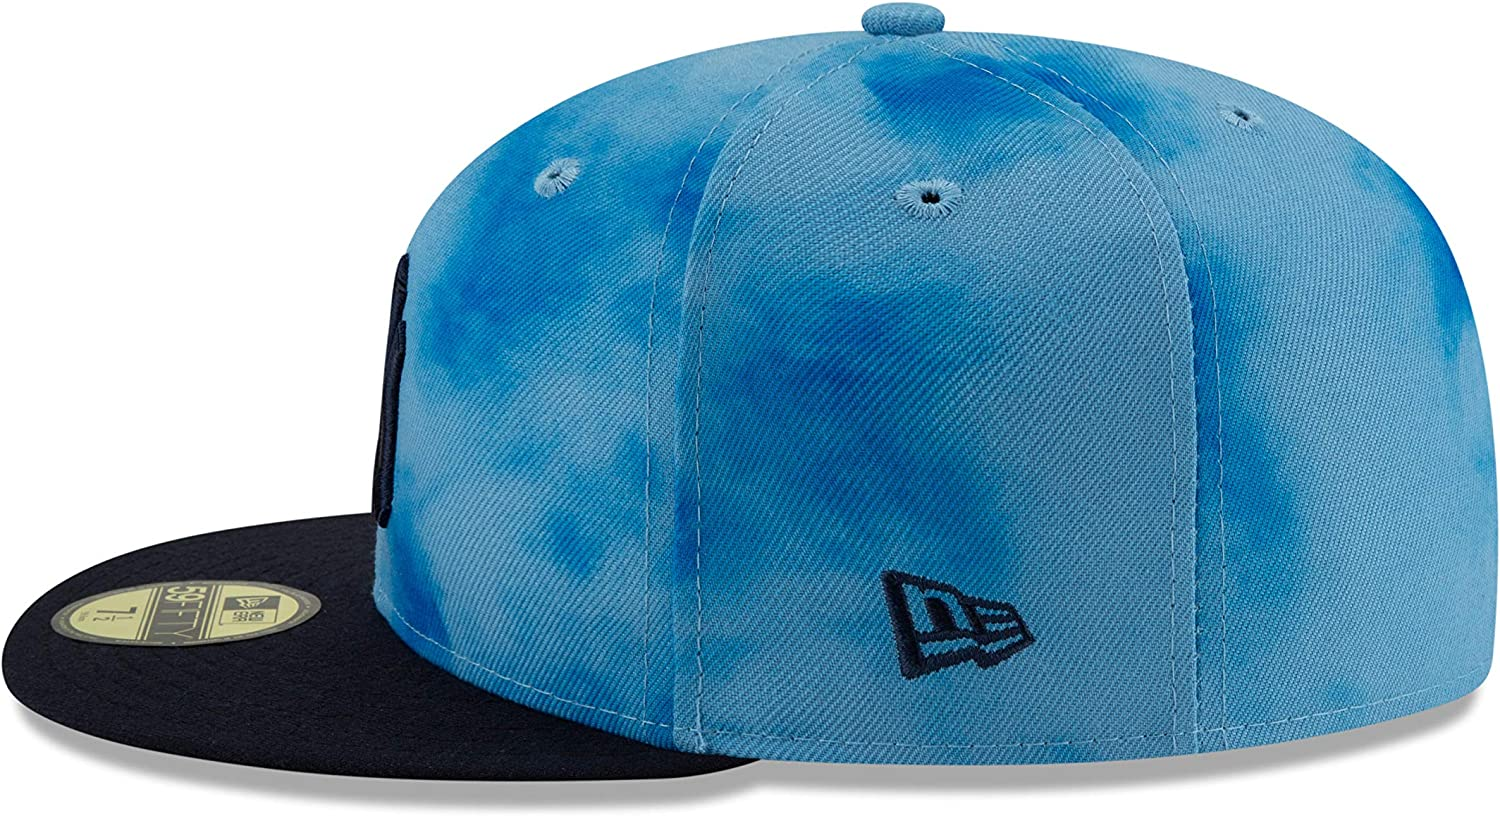 New Era New York Yankees 2019 Fathers Day Navy//Blue On-Field 59FIFTY Fitted Hat